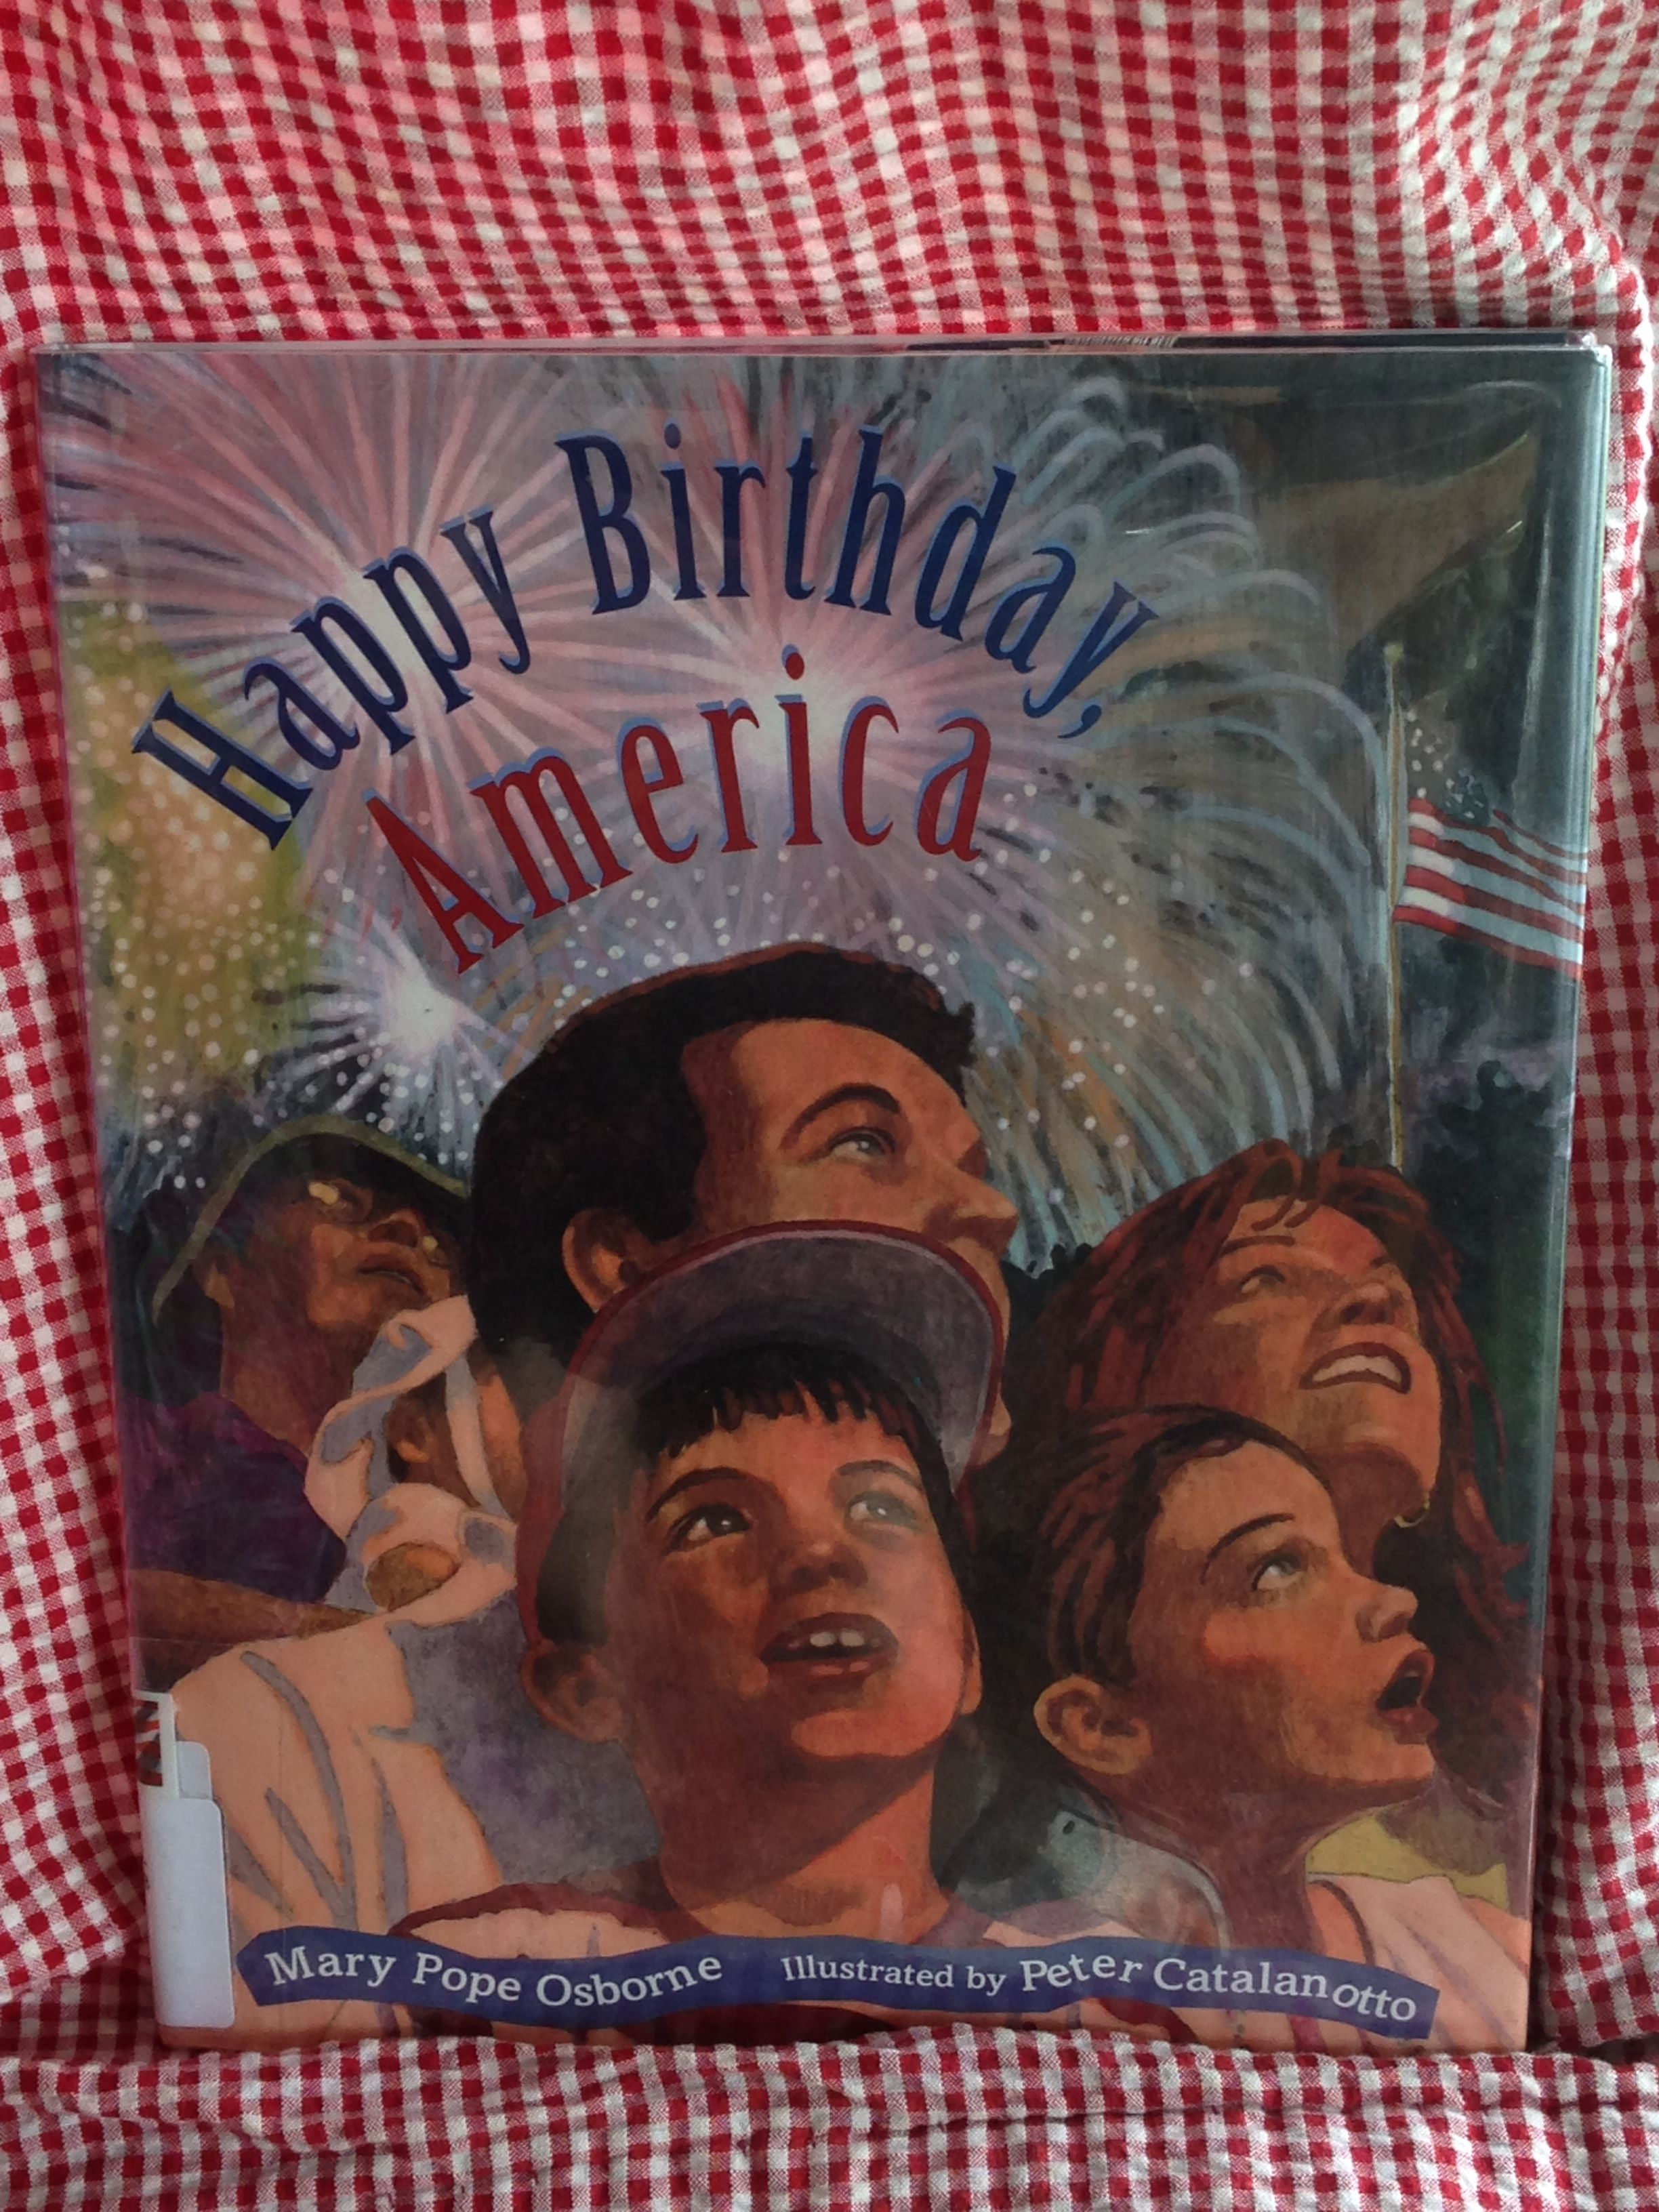 Happy Birthday America by Mary Pope Osborne most famous for her